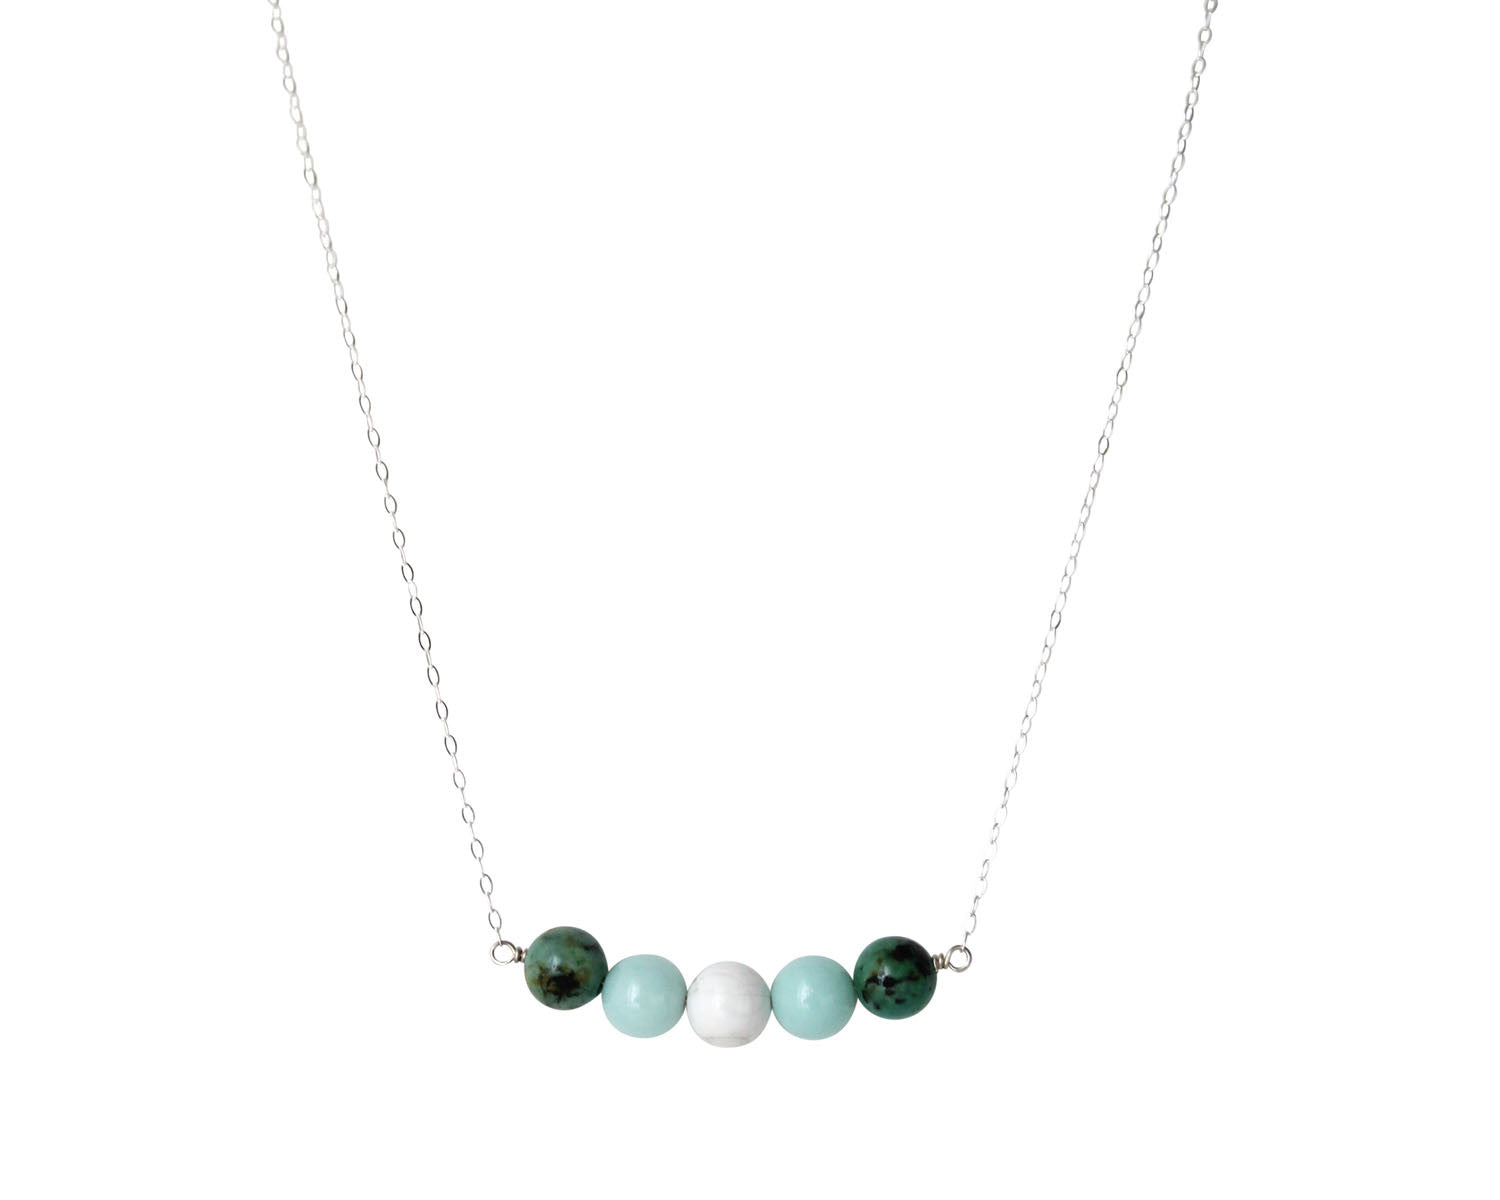 Focus Bliss Necklace